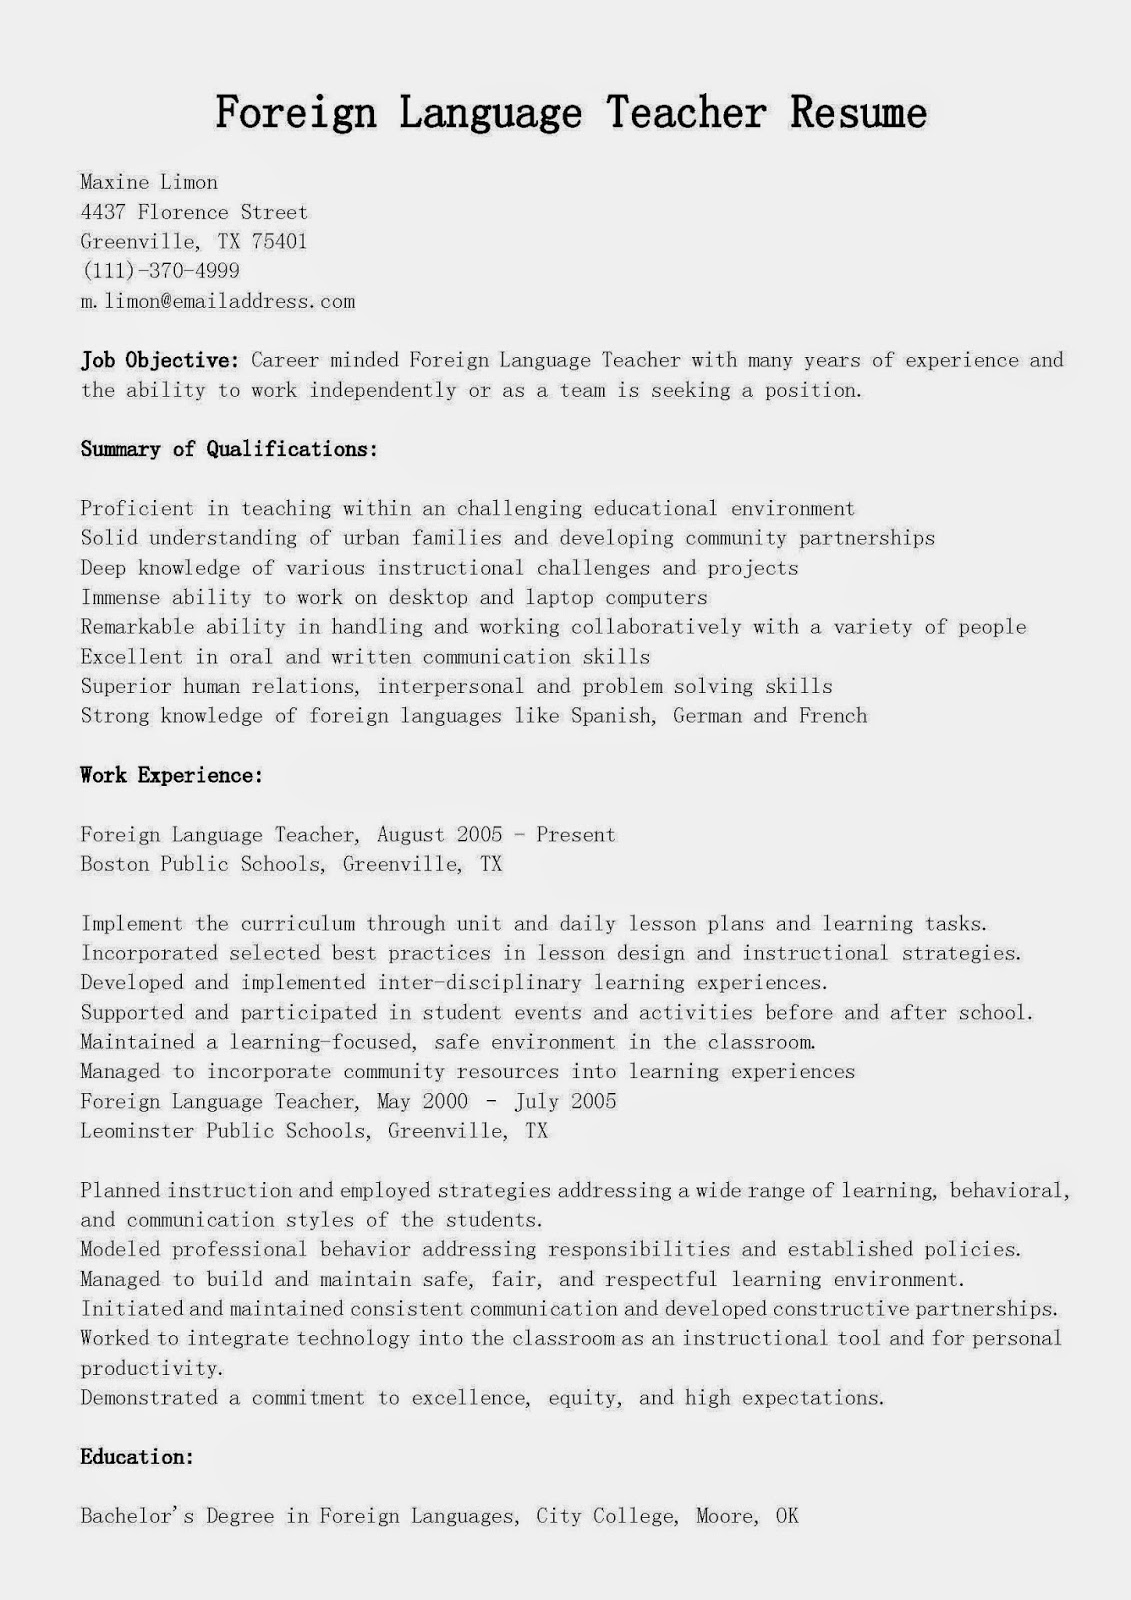 Foreign Language Resume Example 19